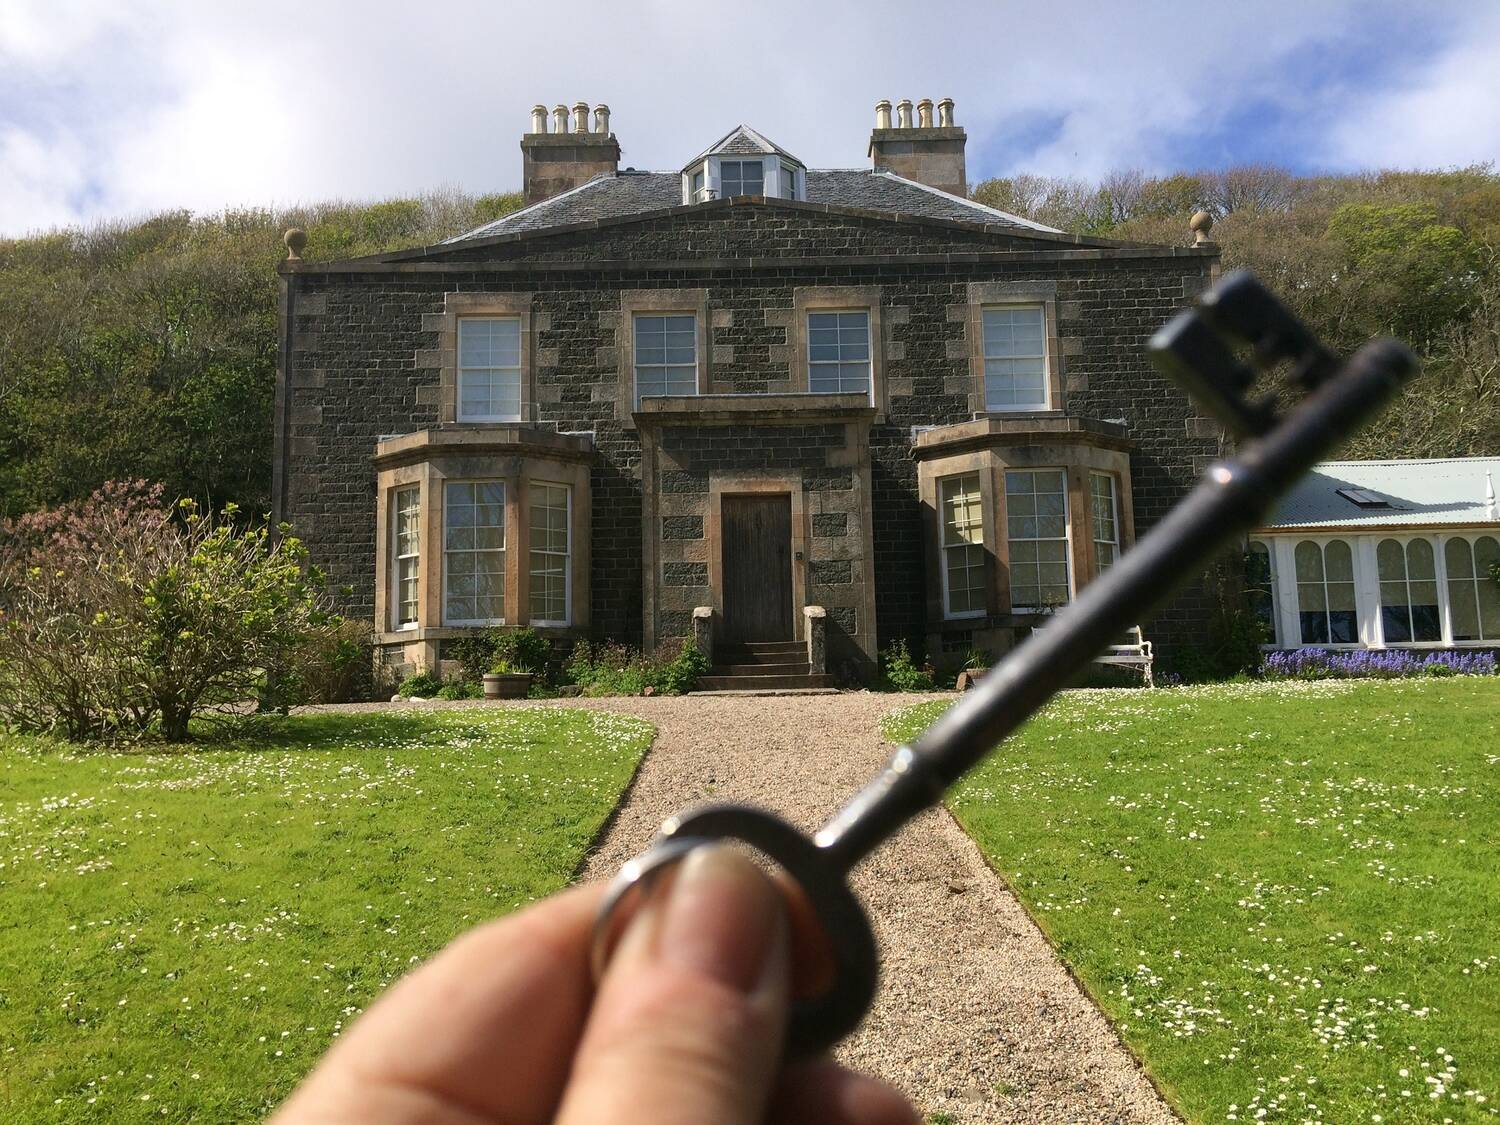 A hand holds up a mortice key in front of Canna House. A gravel path crosses a lawn and reaches a large wooden front door.